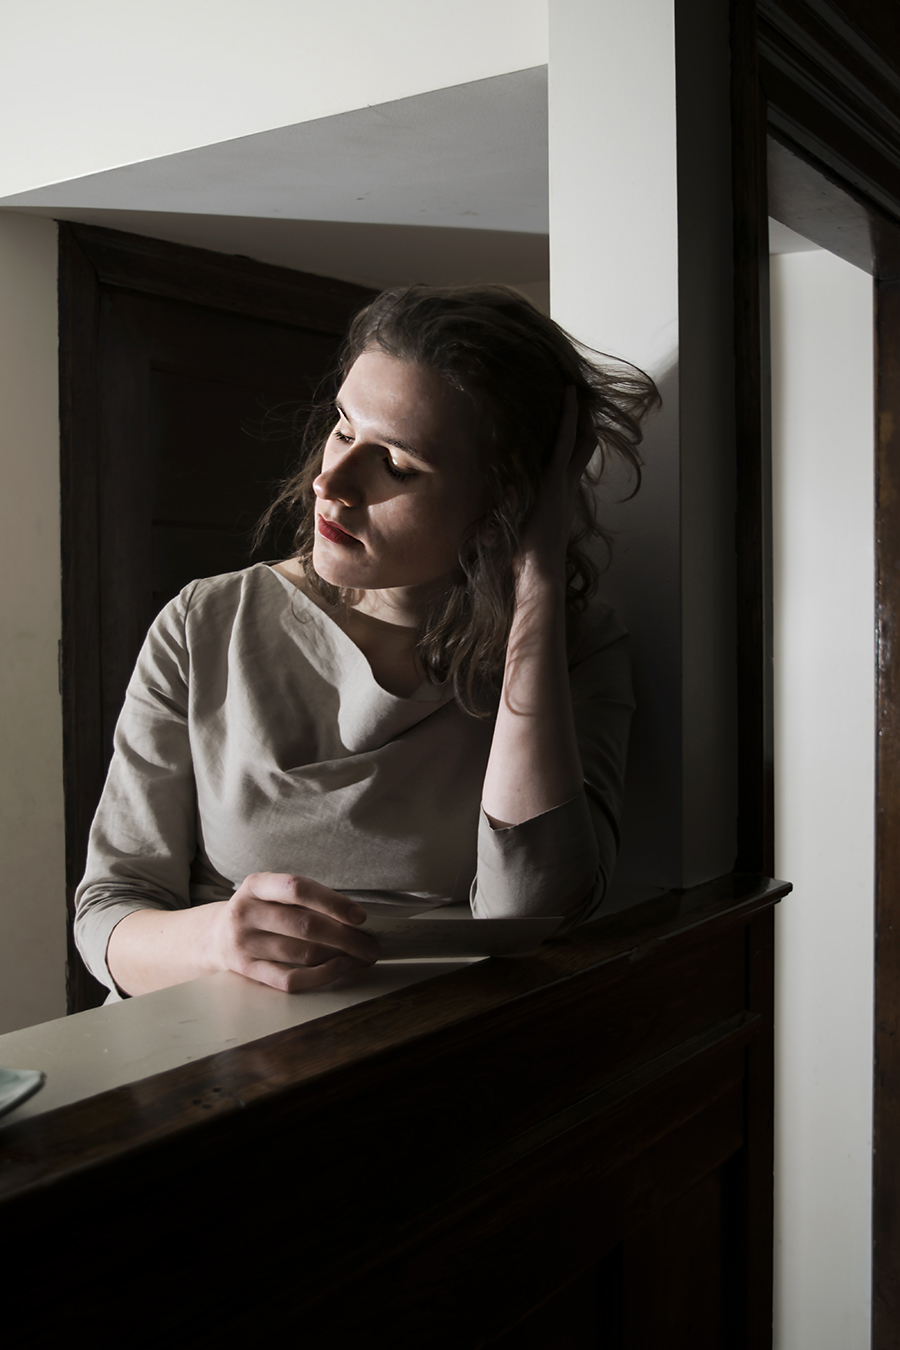 Leniqueca_Welcome_Portraiture_Lise_JeSuis_Desolate_Distant_Love_Thinking_Halfbody_Framed_Hair_Out_of_Face_lonely_woman_missing_boyfriend